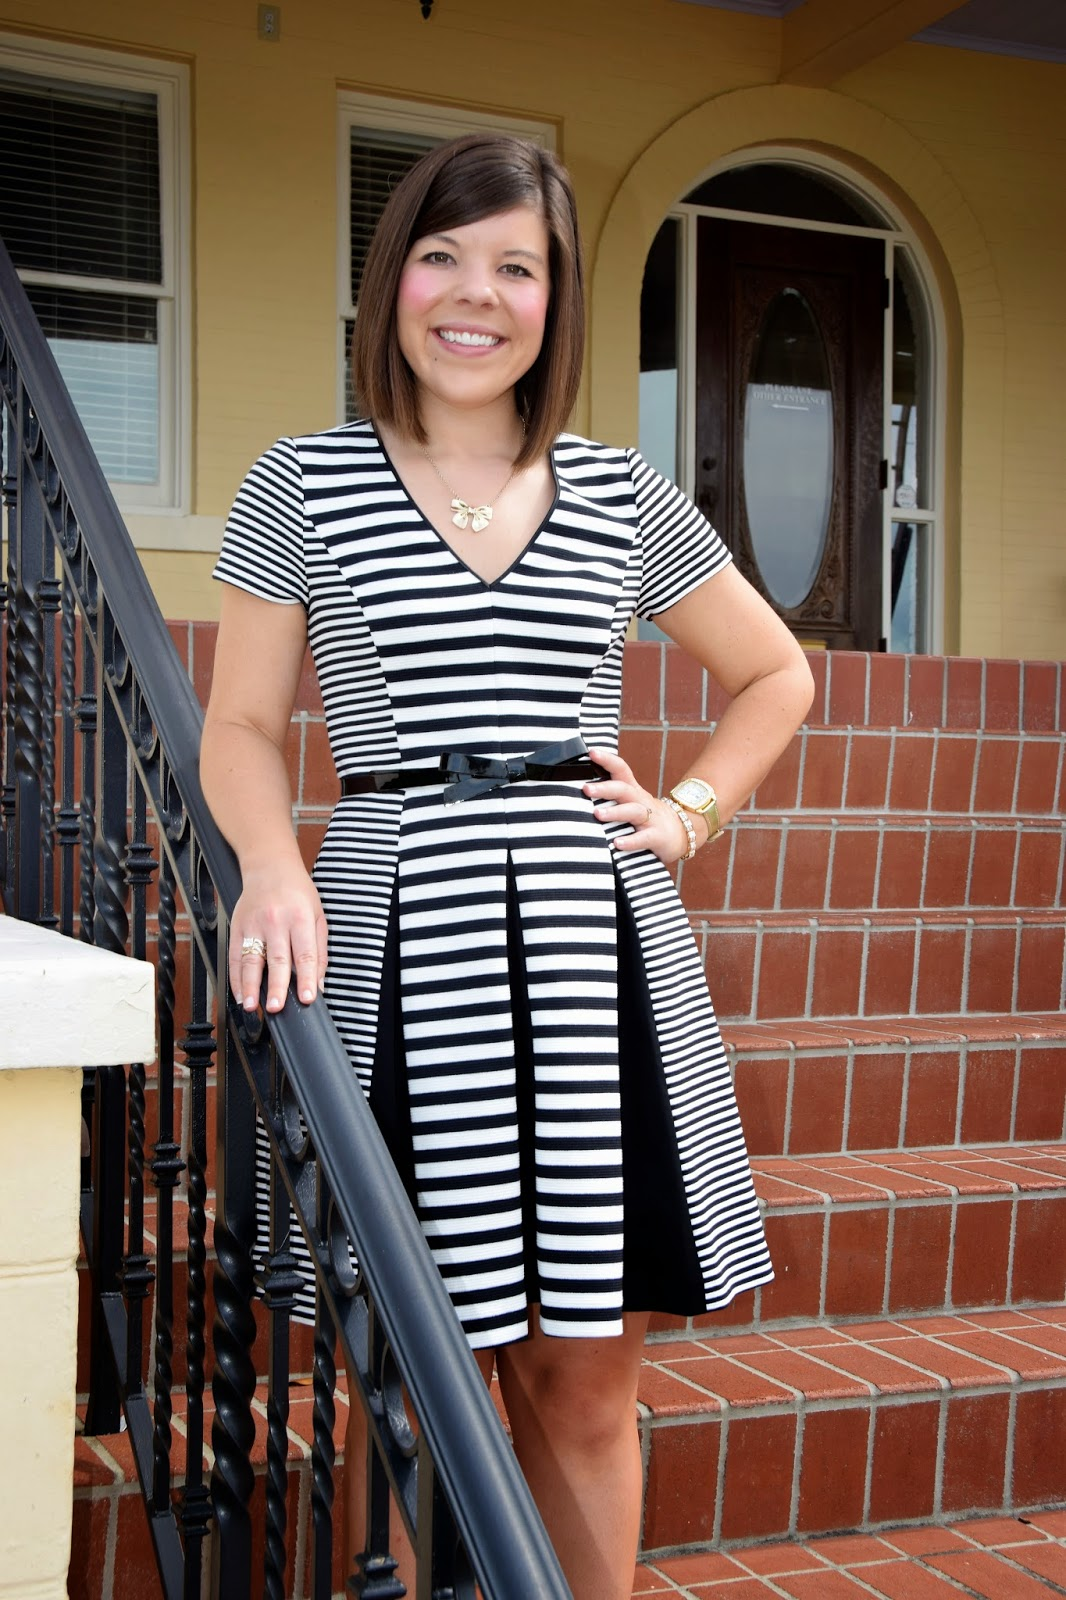 Workweek Chic: Black and White with Bows All Over